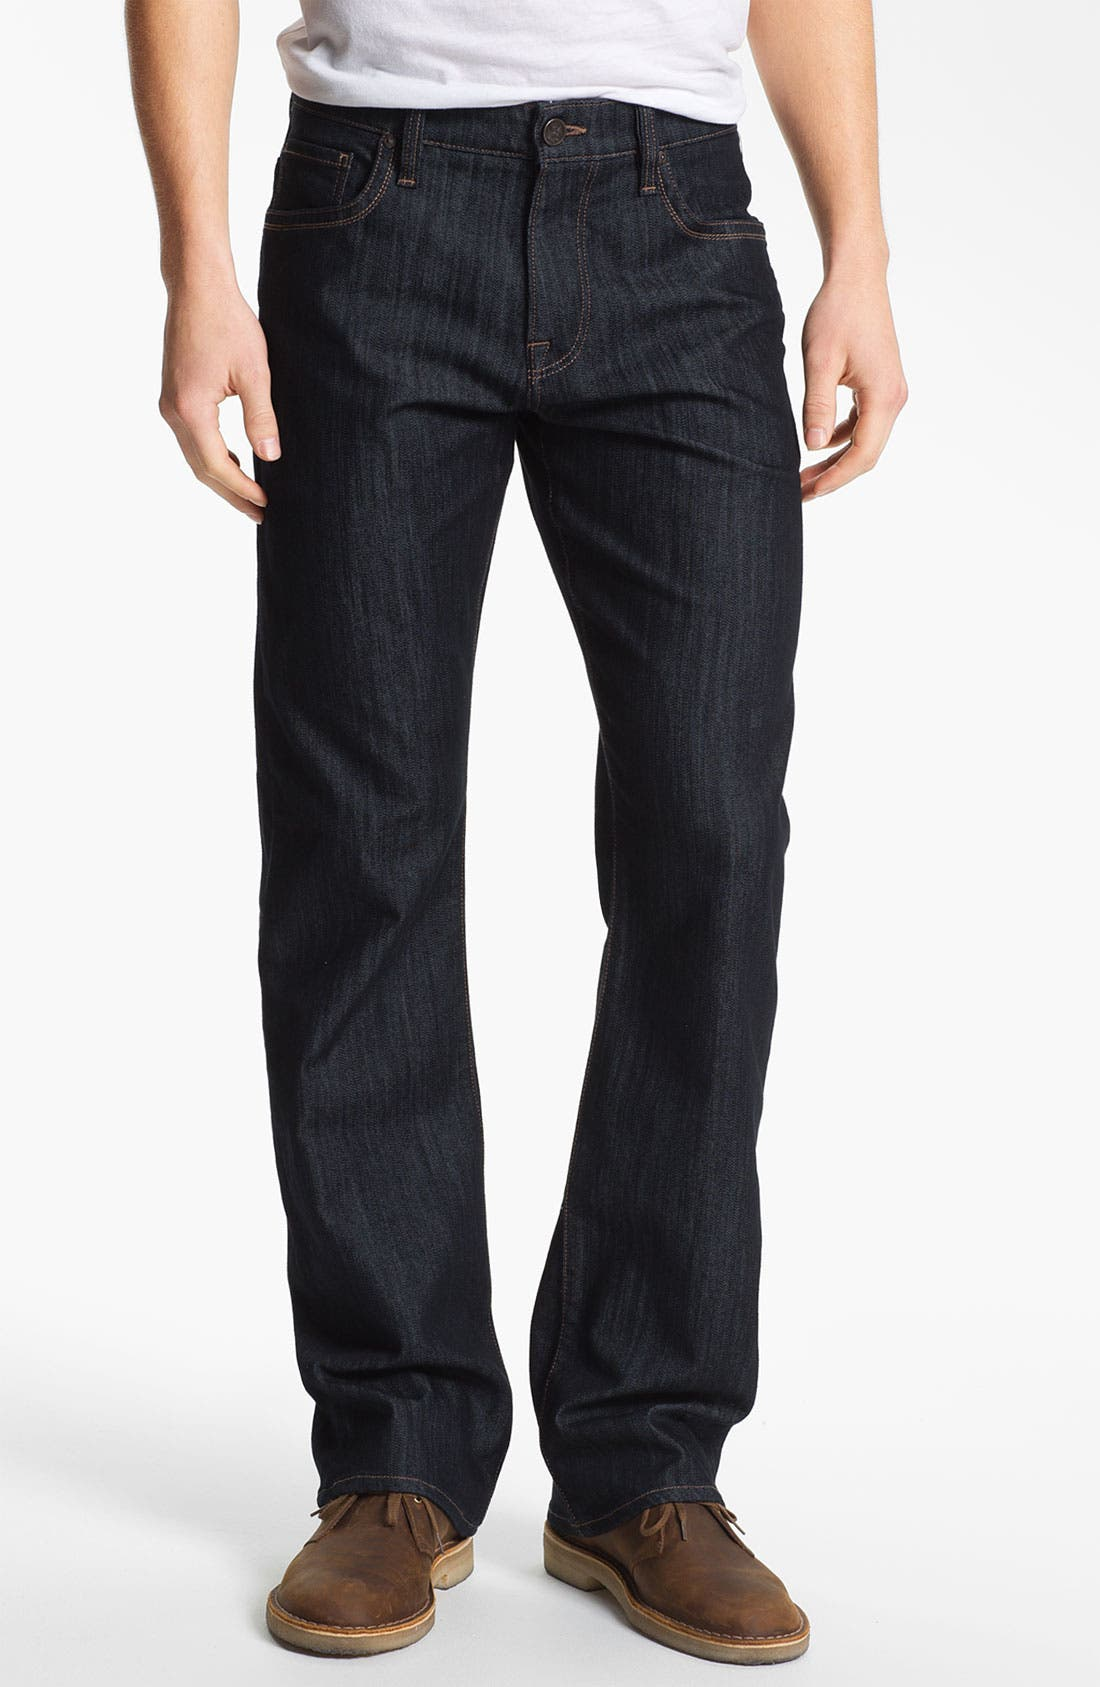 Main Image - 34 Heritage 'Confidence' Relaxed Leg Jeans (Rinse Mercerized) (Online Only)